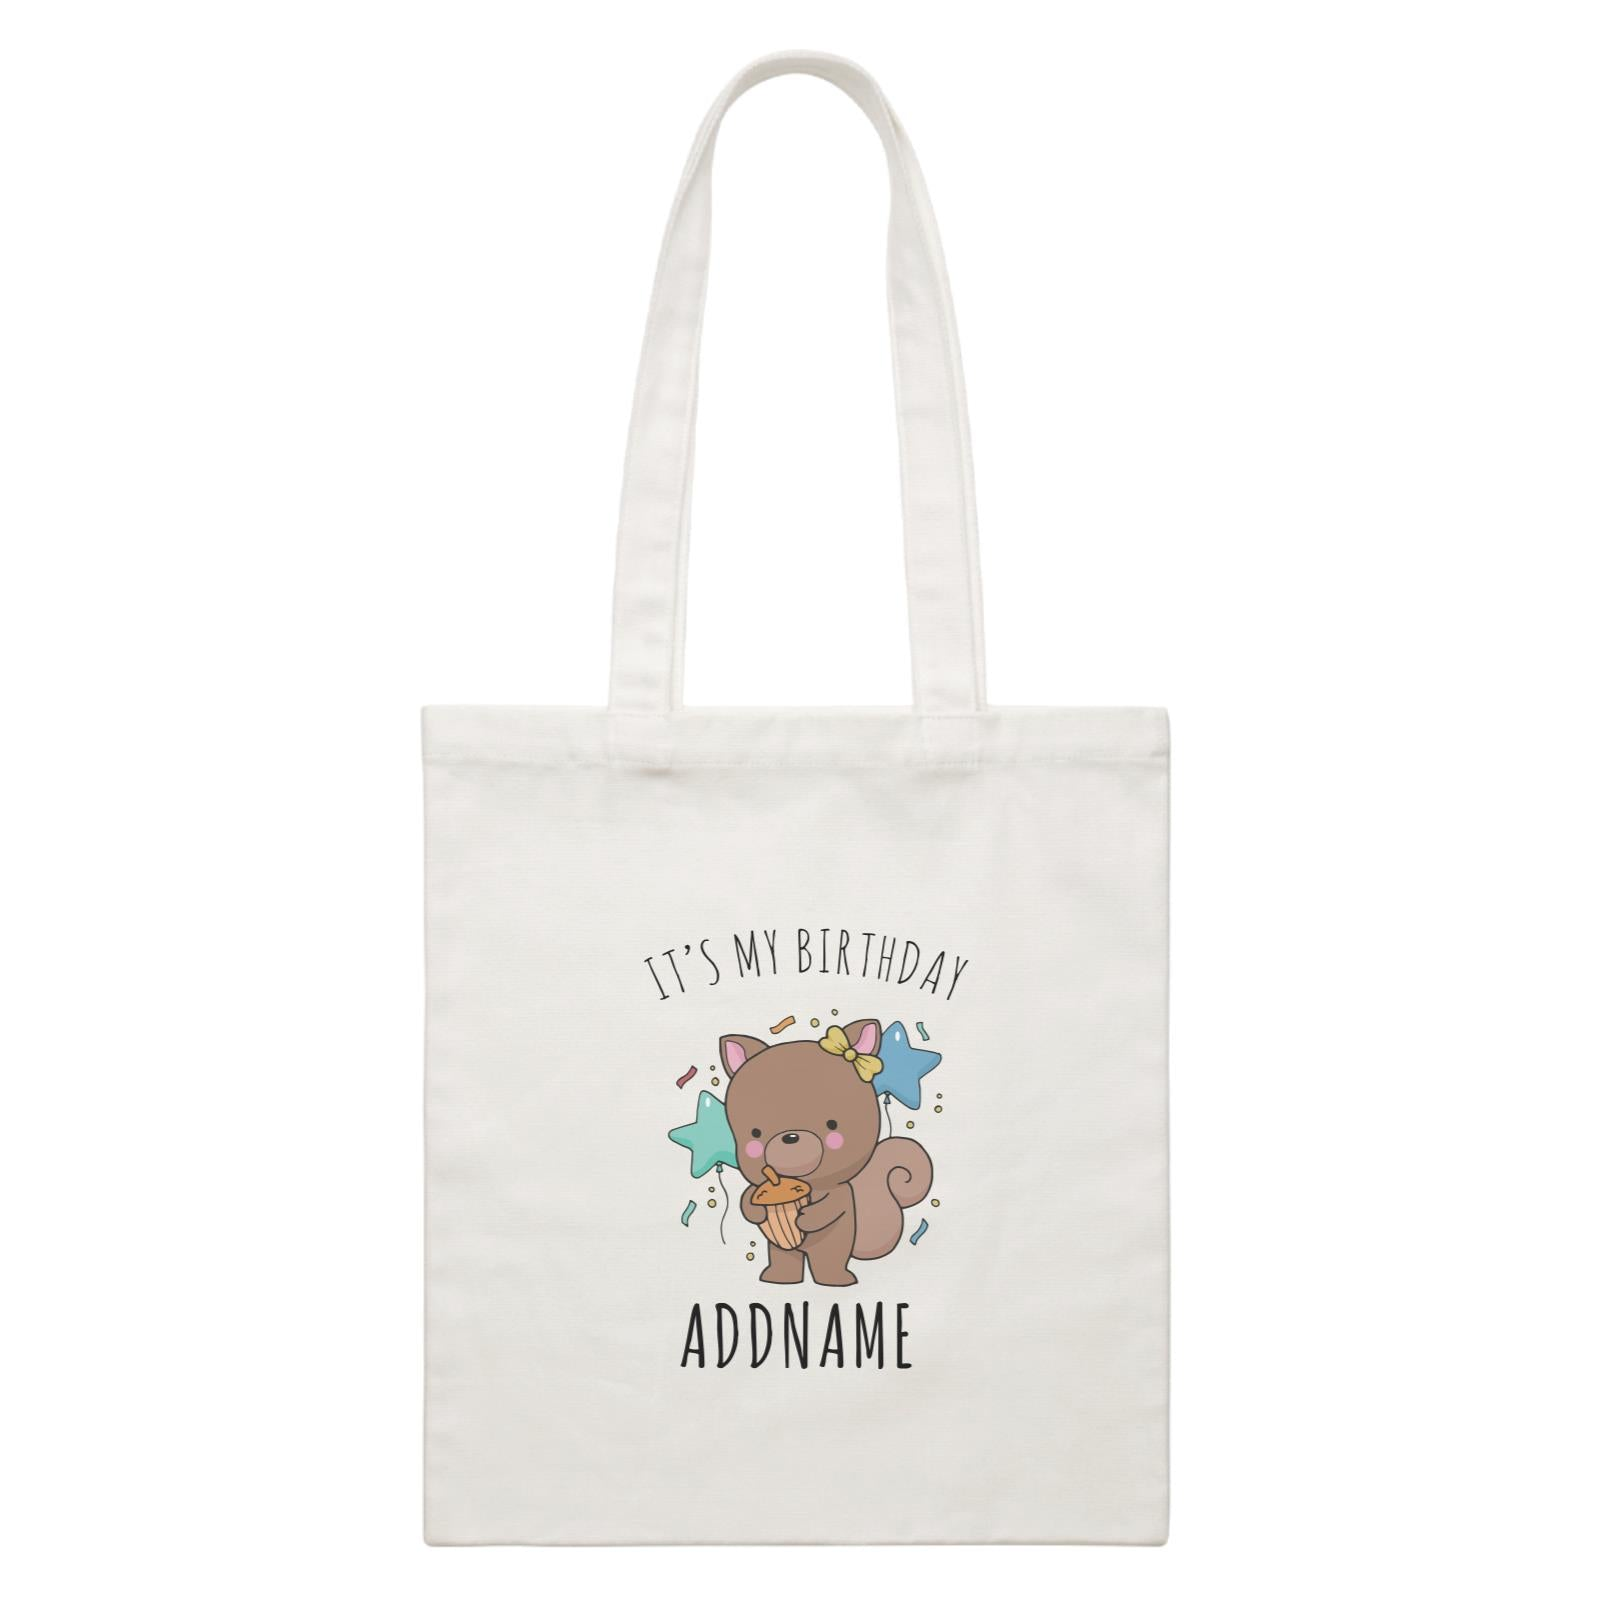 Birthday Sketch Animals Squirrel with Acorn It's My Birthday Addname White Canvas Bag